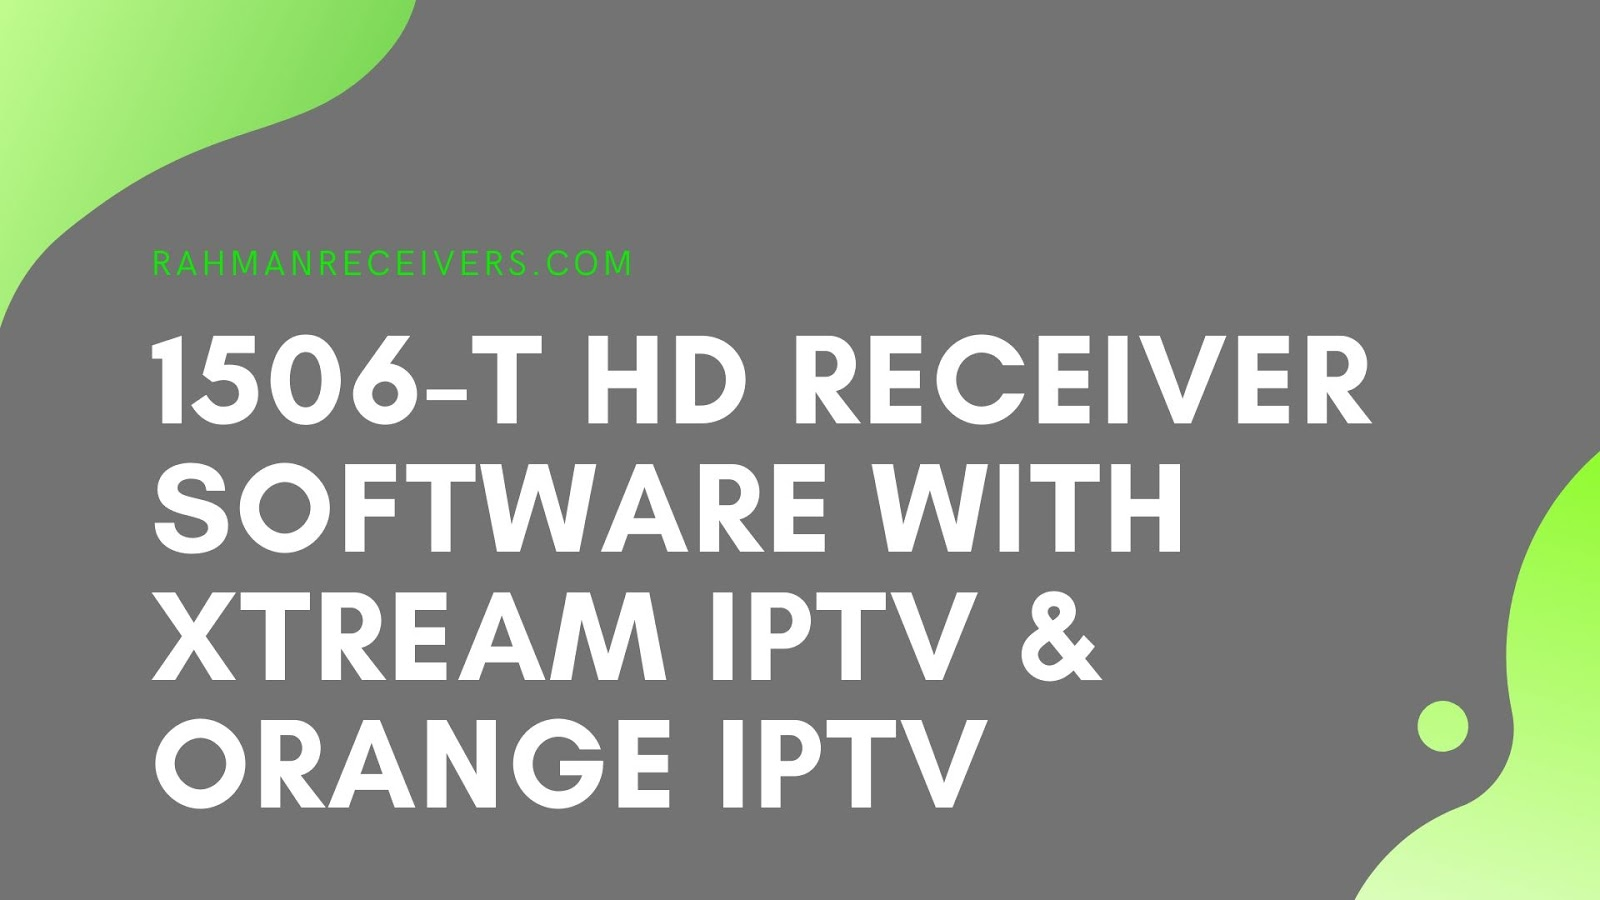 1506-T HD RECEIVER SOFTWARE WITH XTREAM IPTV & ORANGE IPTV